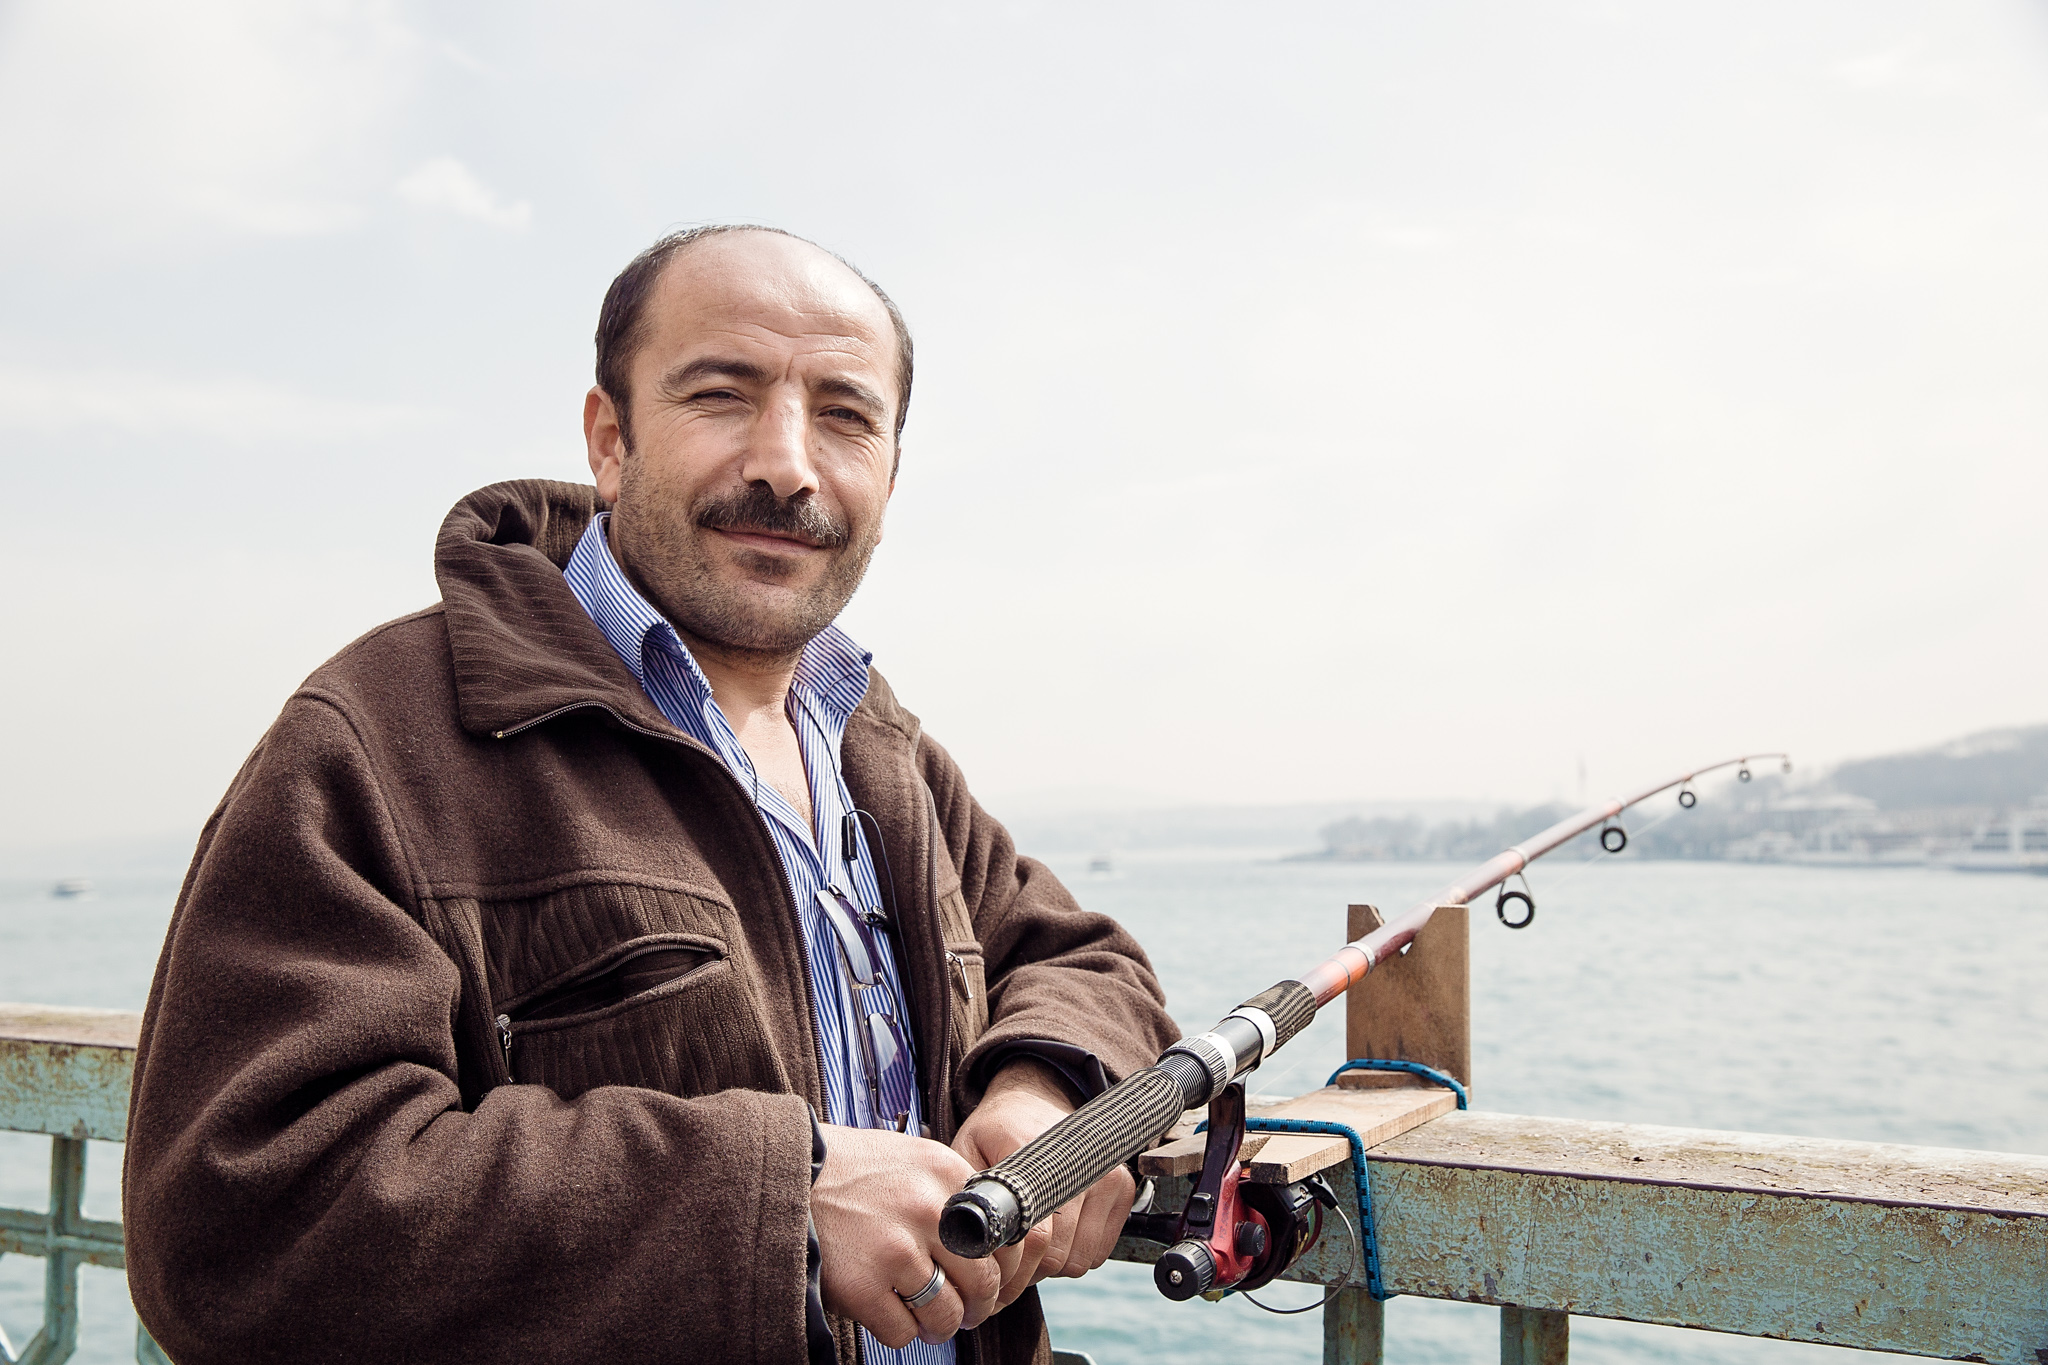 istanbul_galata-bridge-0950-fisherman-friendly.jpg